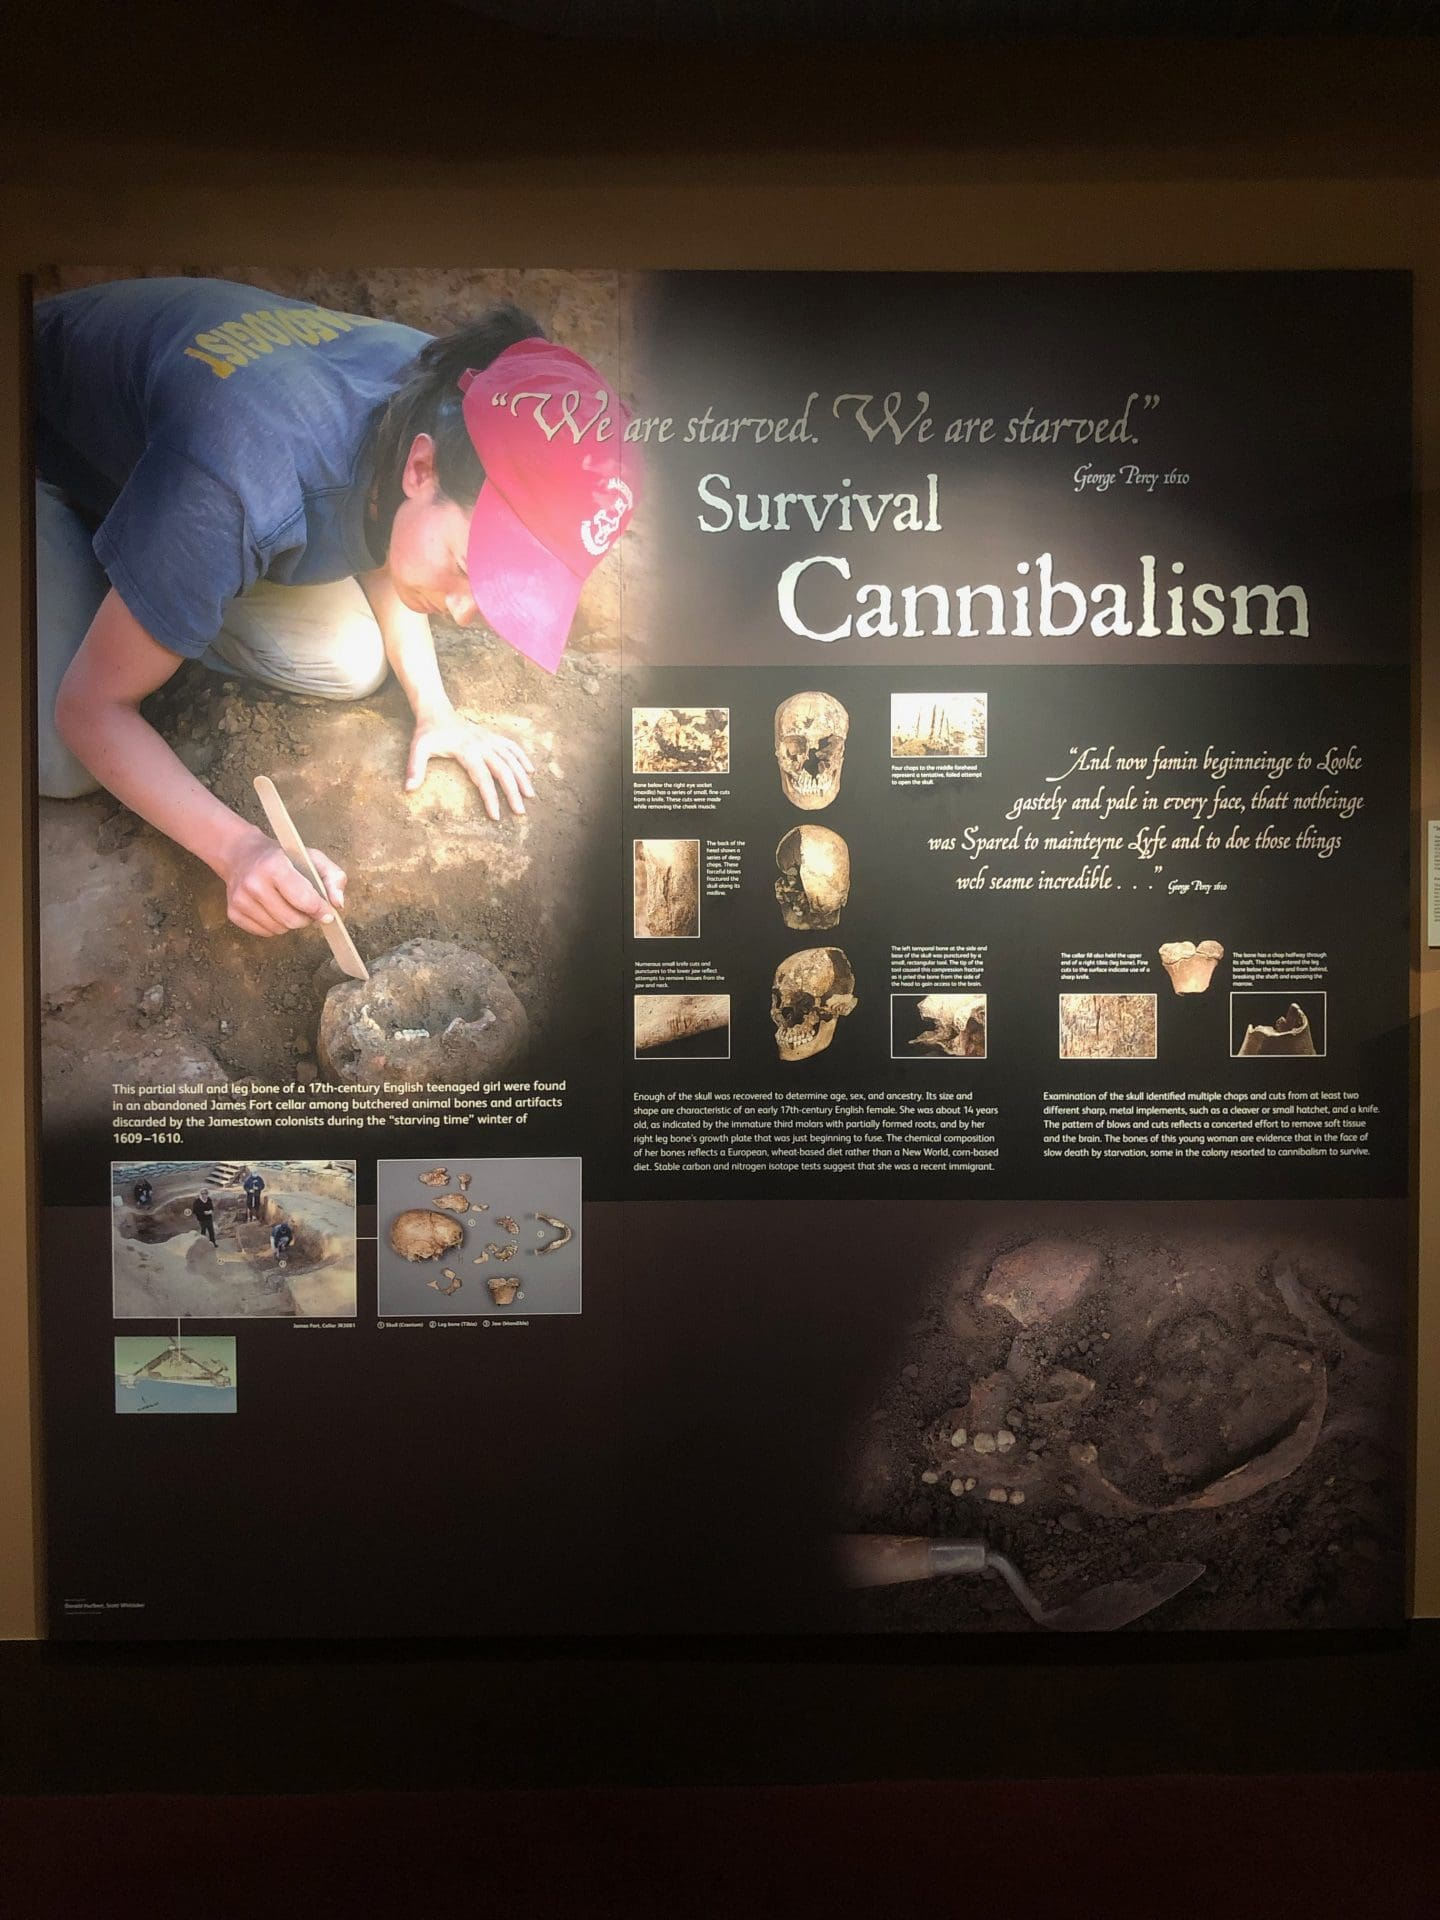 canibilism in historic Jamestown Virginia